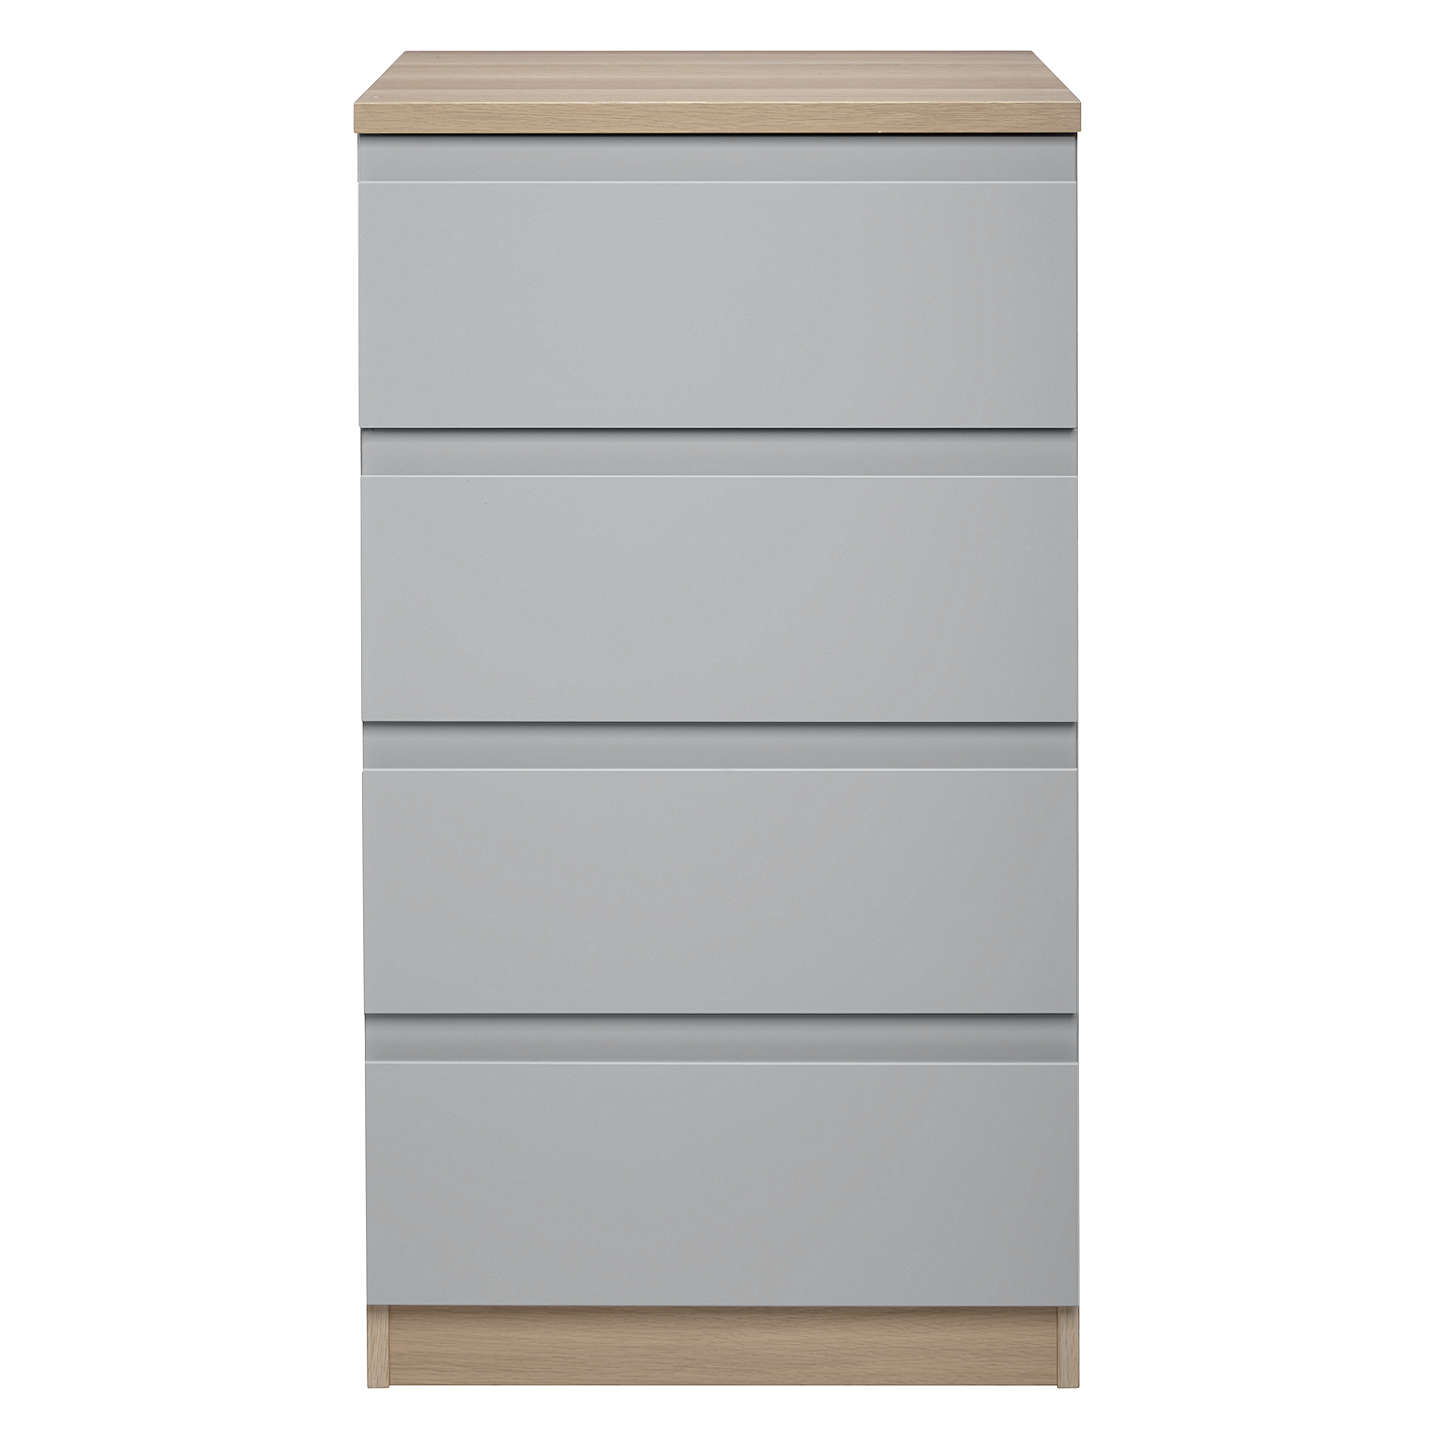 BuyHouse by John Lewis Mix it Narrow 4 Drawer Chest, House Smoke/Natural Oak Online at johnlewis.com